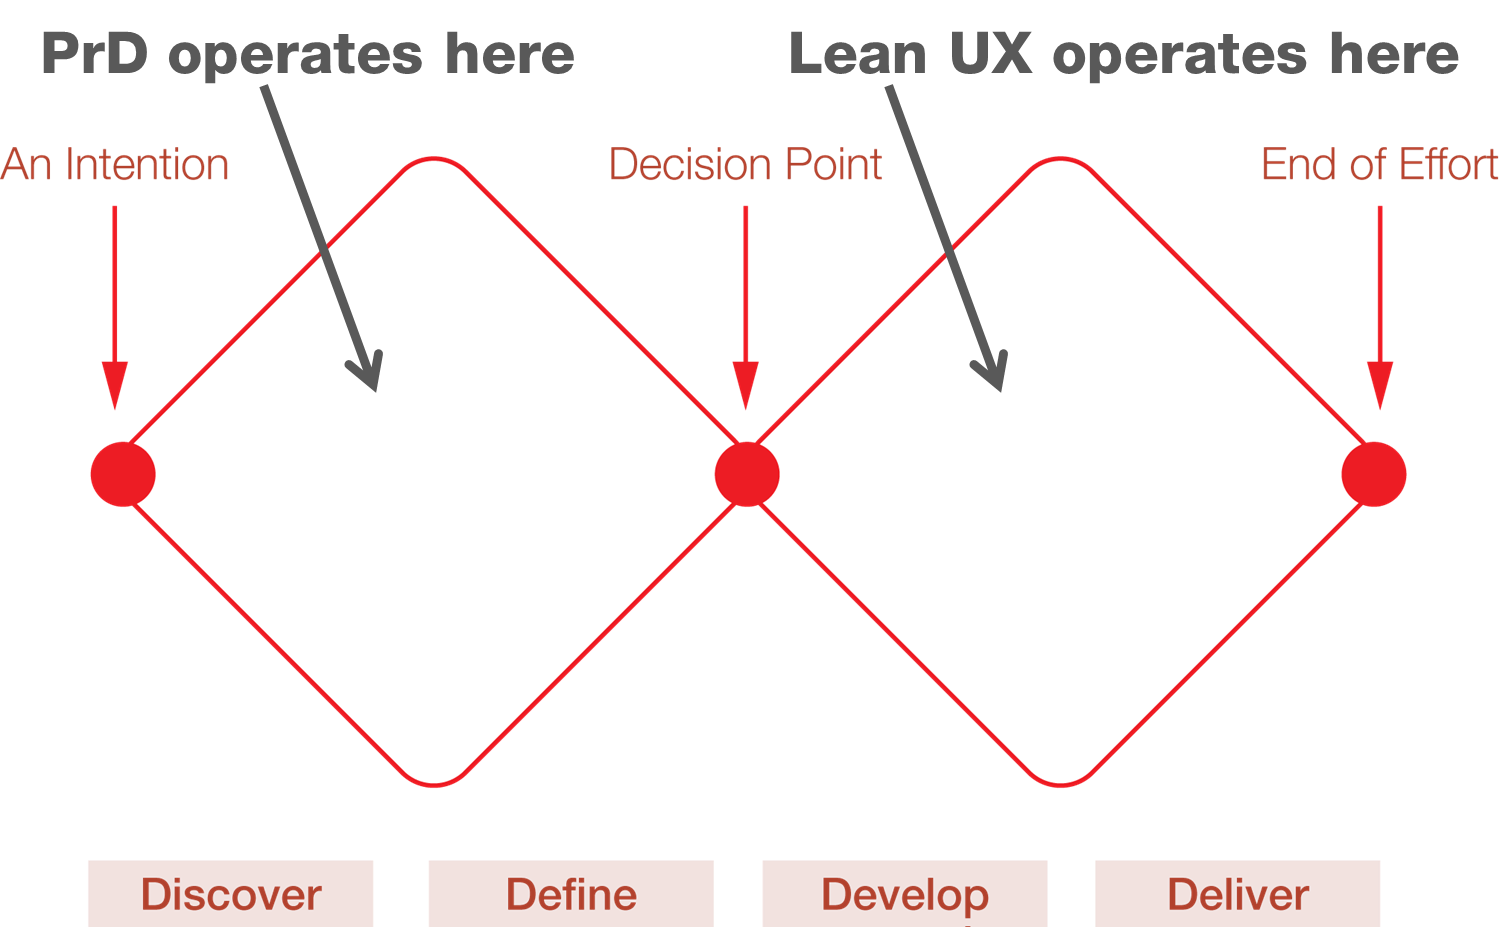 The Double Diamond diagram indicating where PrD and Lean UX ope